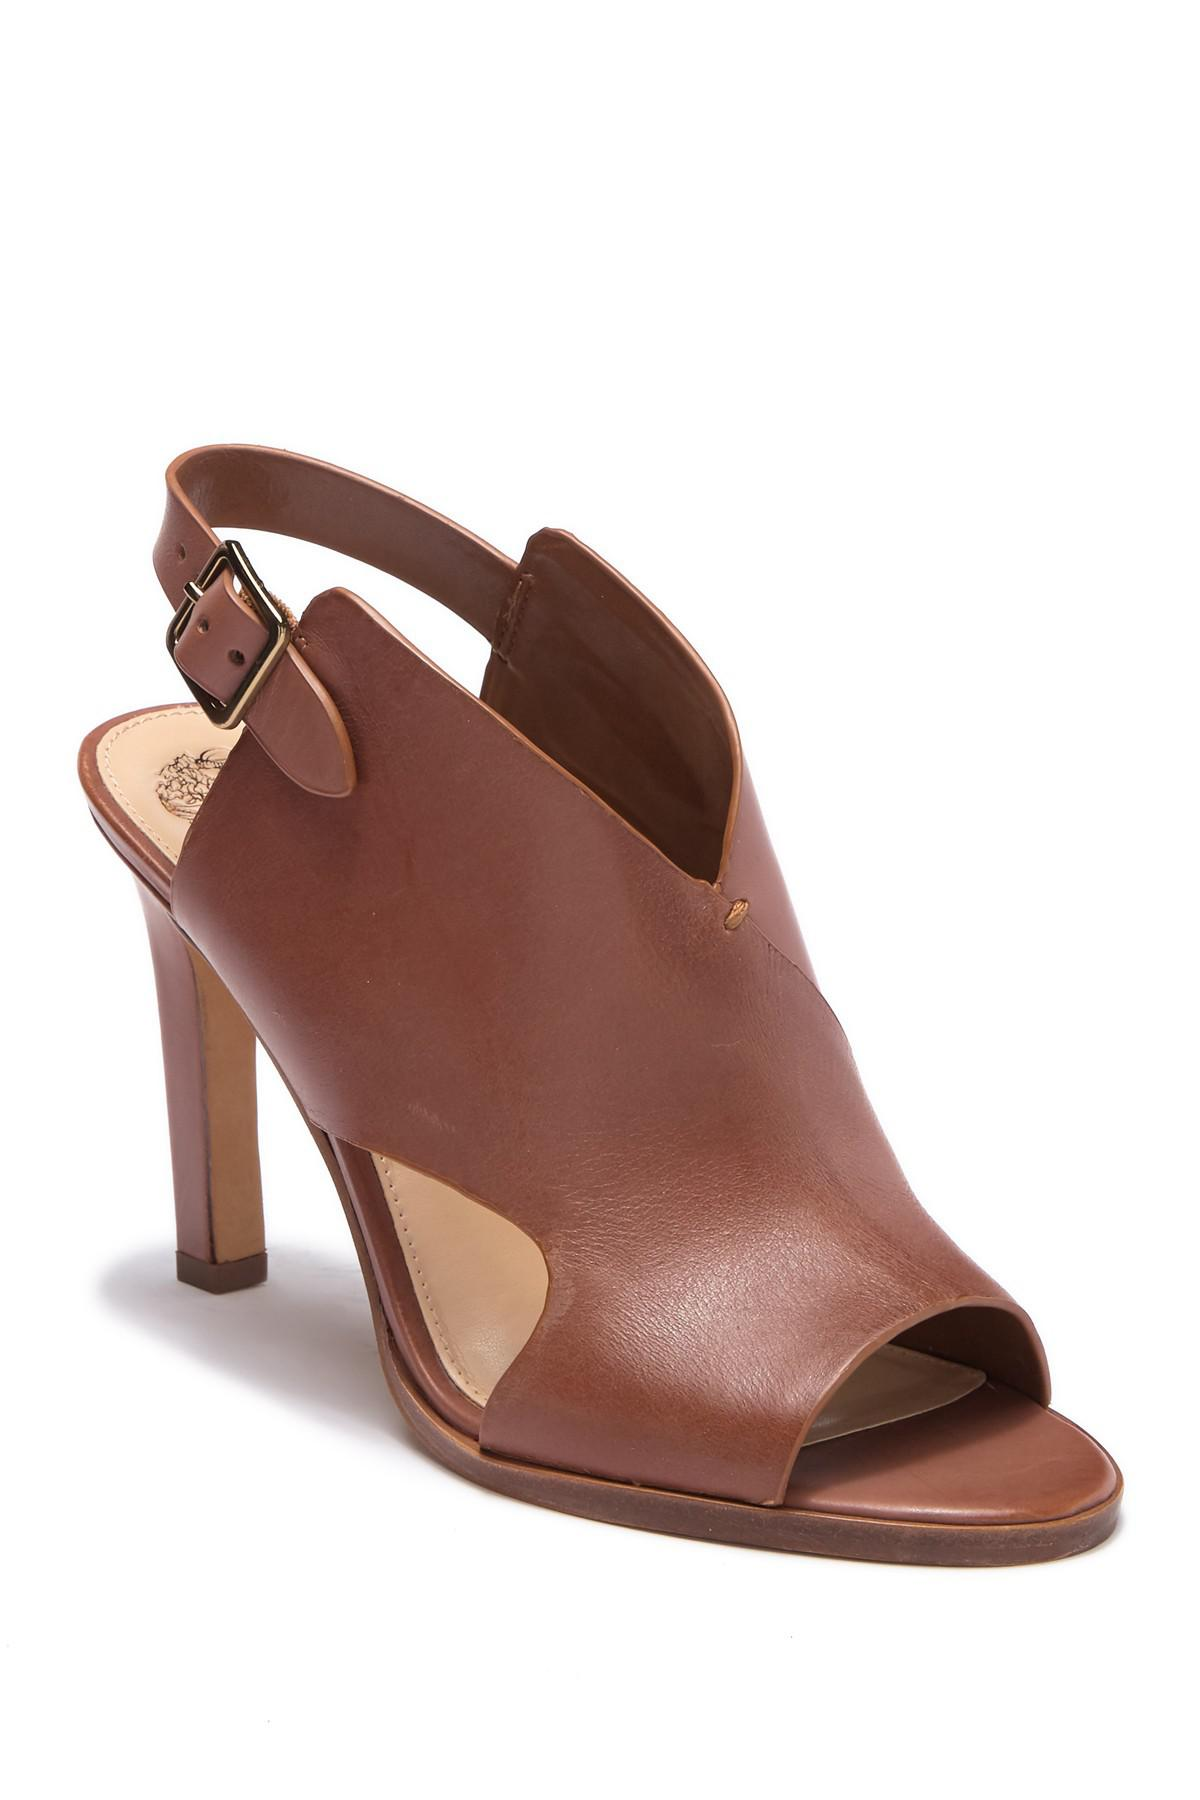 b33c7d6776a7 Lyst - Vince Camuto Norral Sandal in Brown - Save 22%